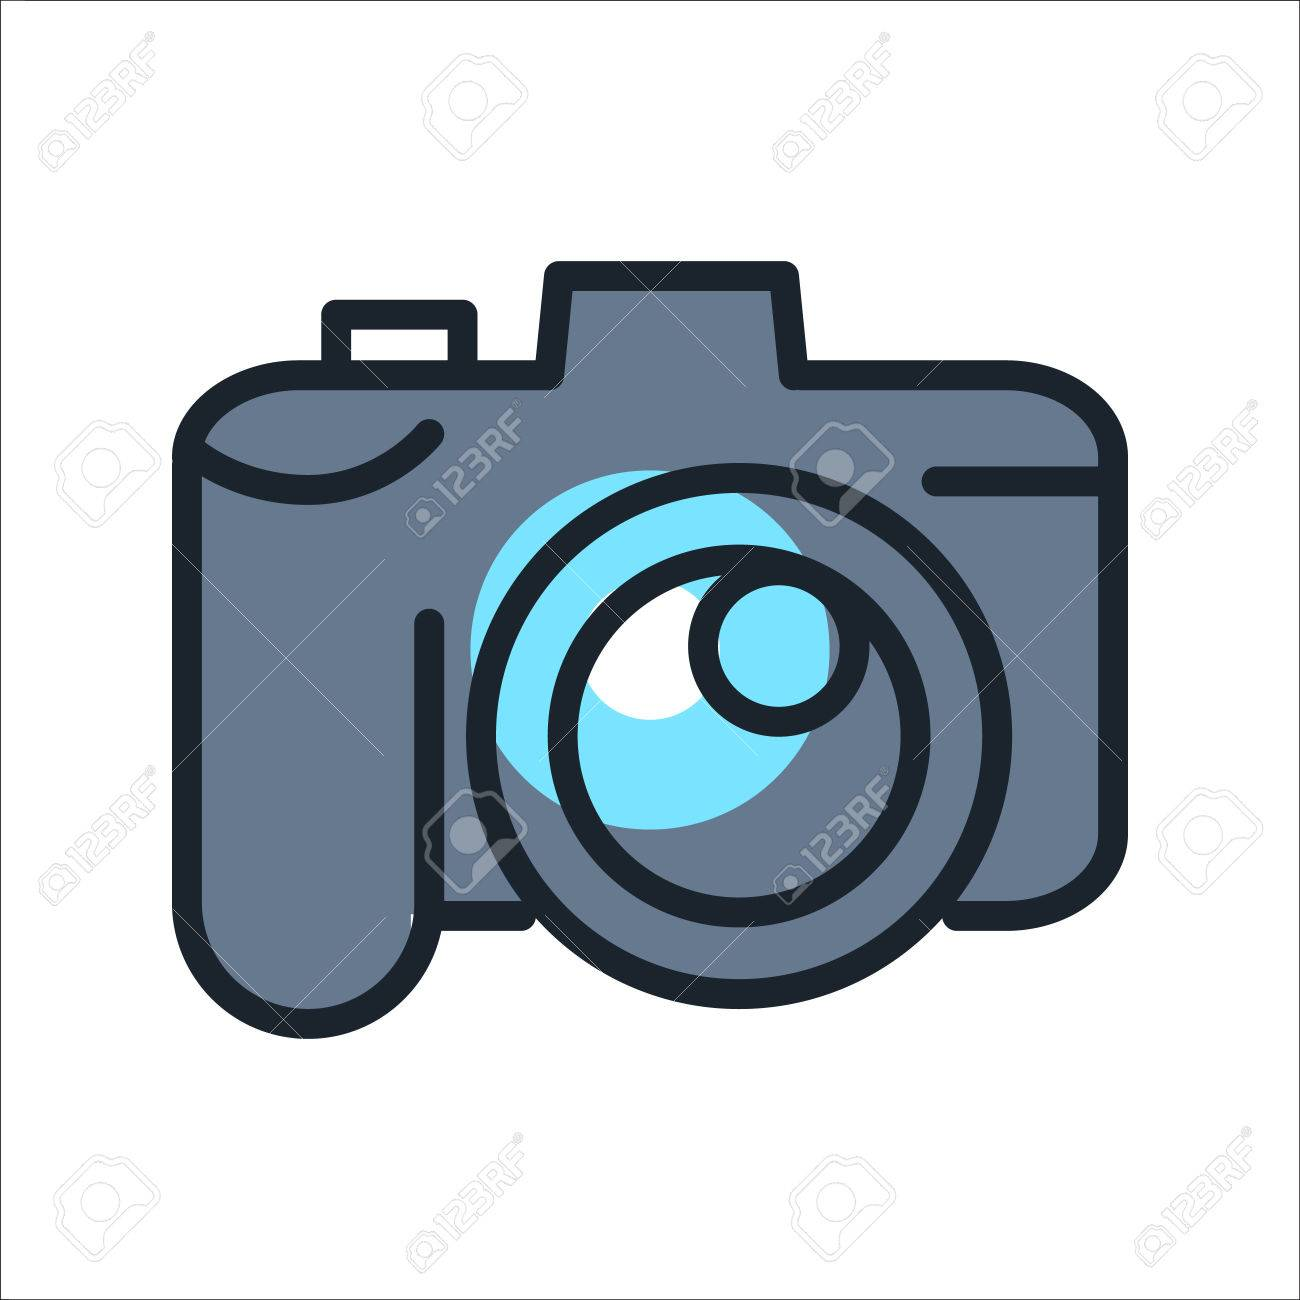 Digital Camera Icon Color Royalty Free Cliparts Vectors And Stock Illustration Image 69905101